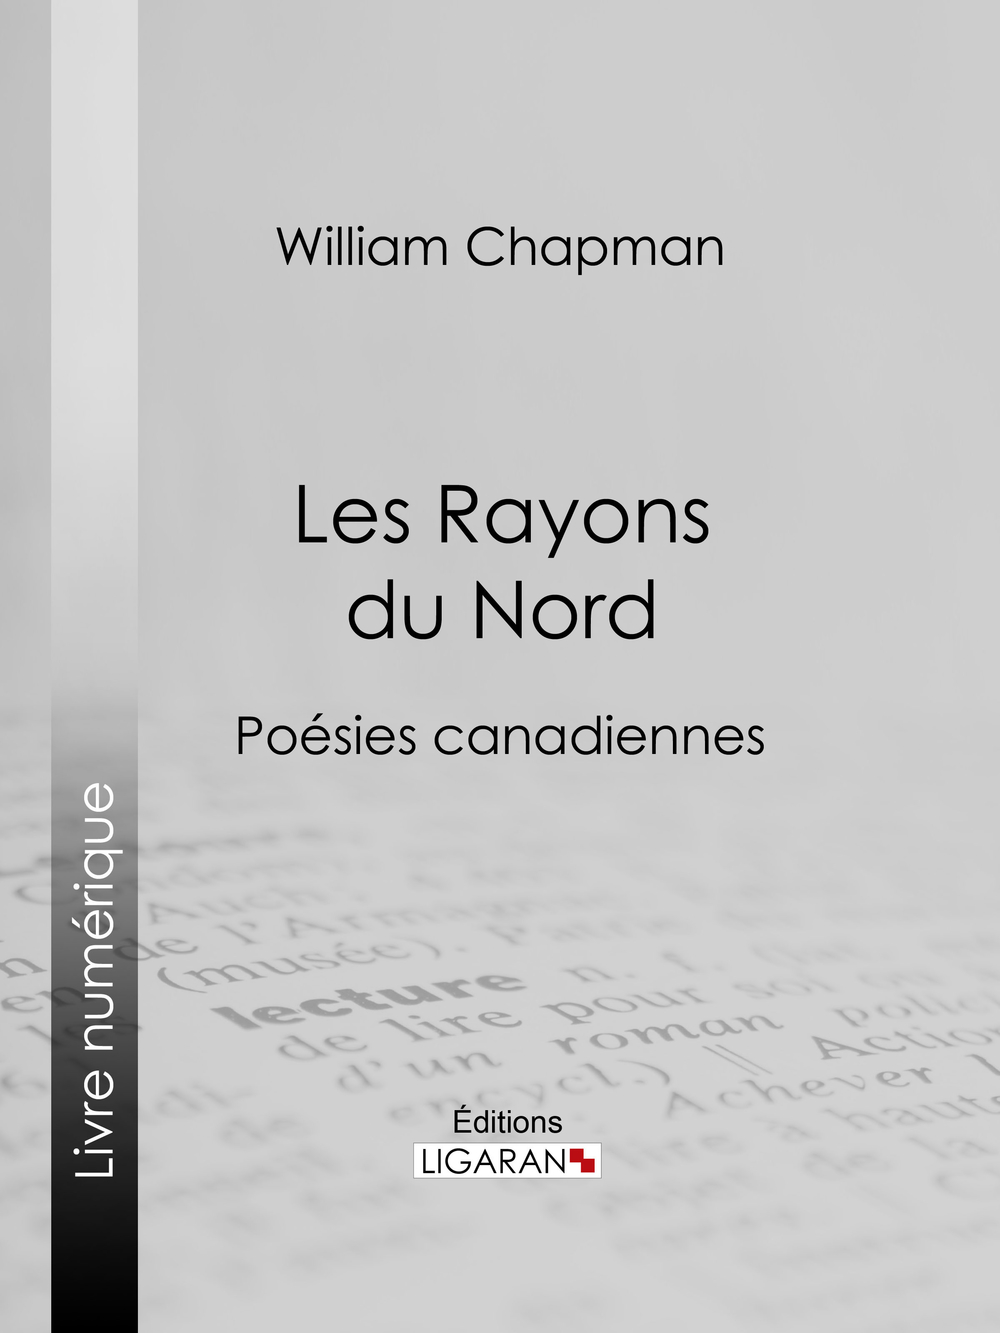 Les Rayons du Nord